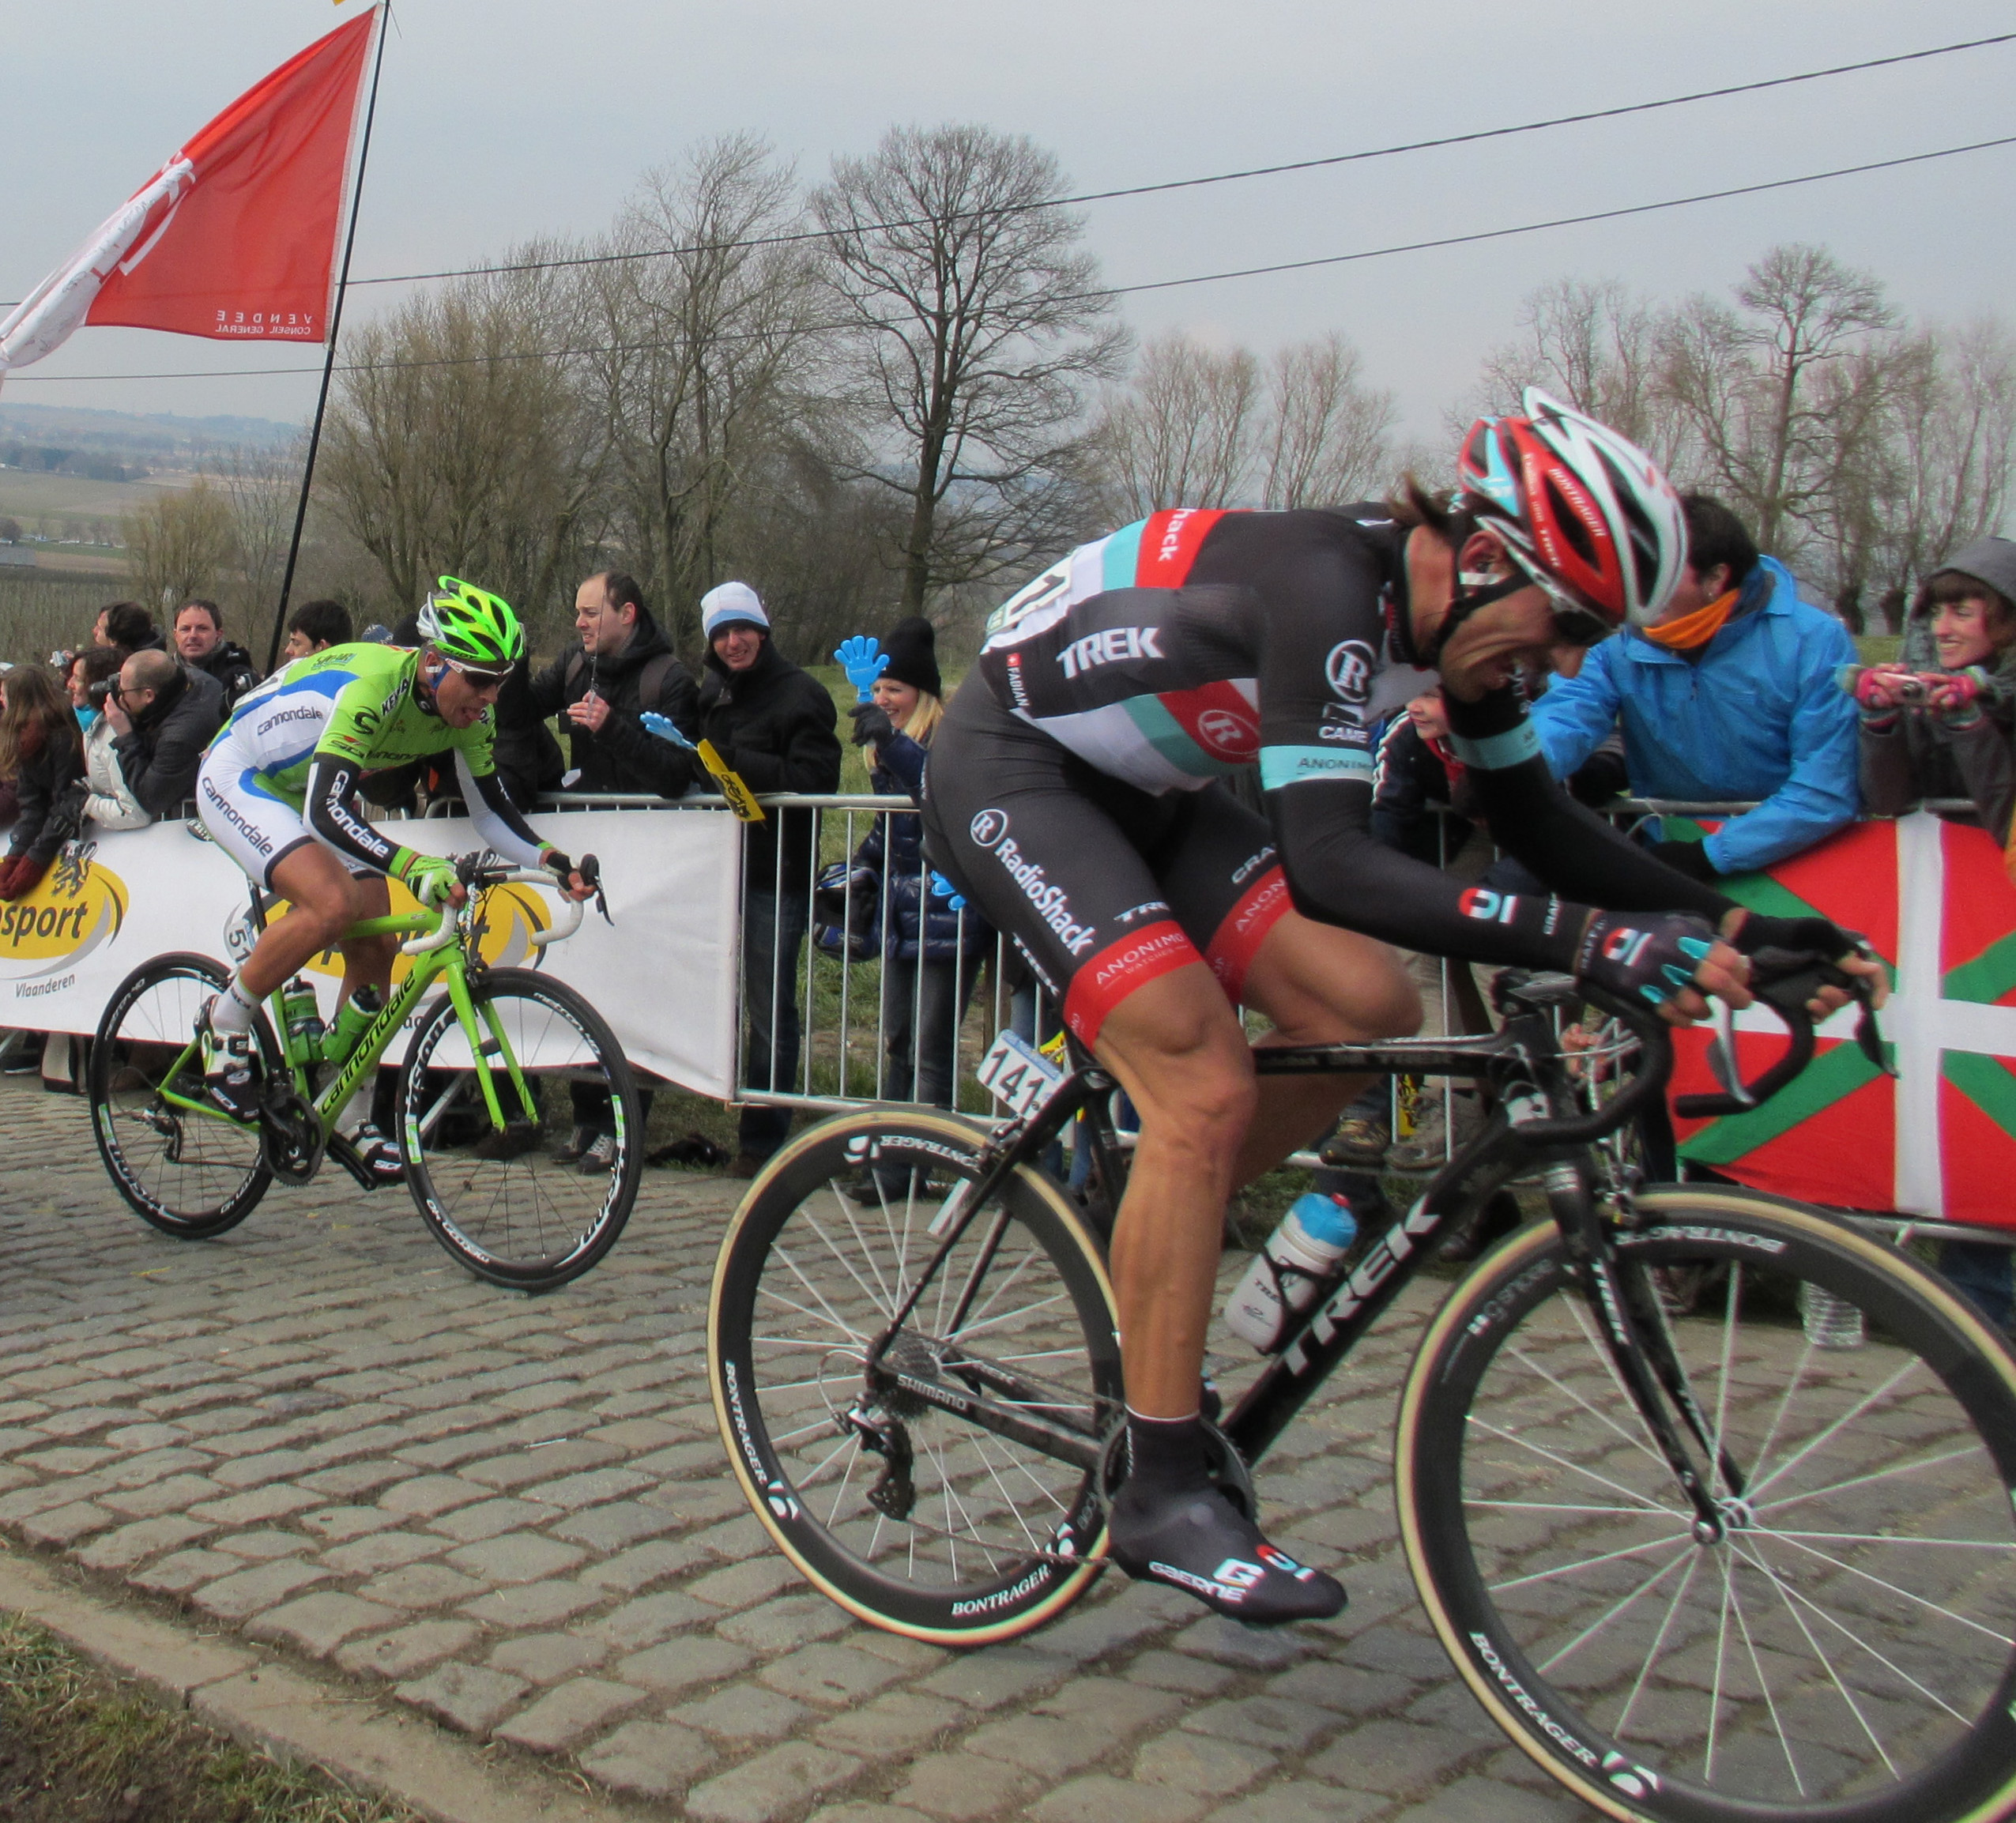 Tour of Flanders on the Paterburg in Kluisbergen